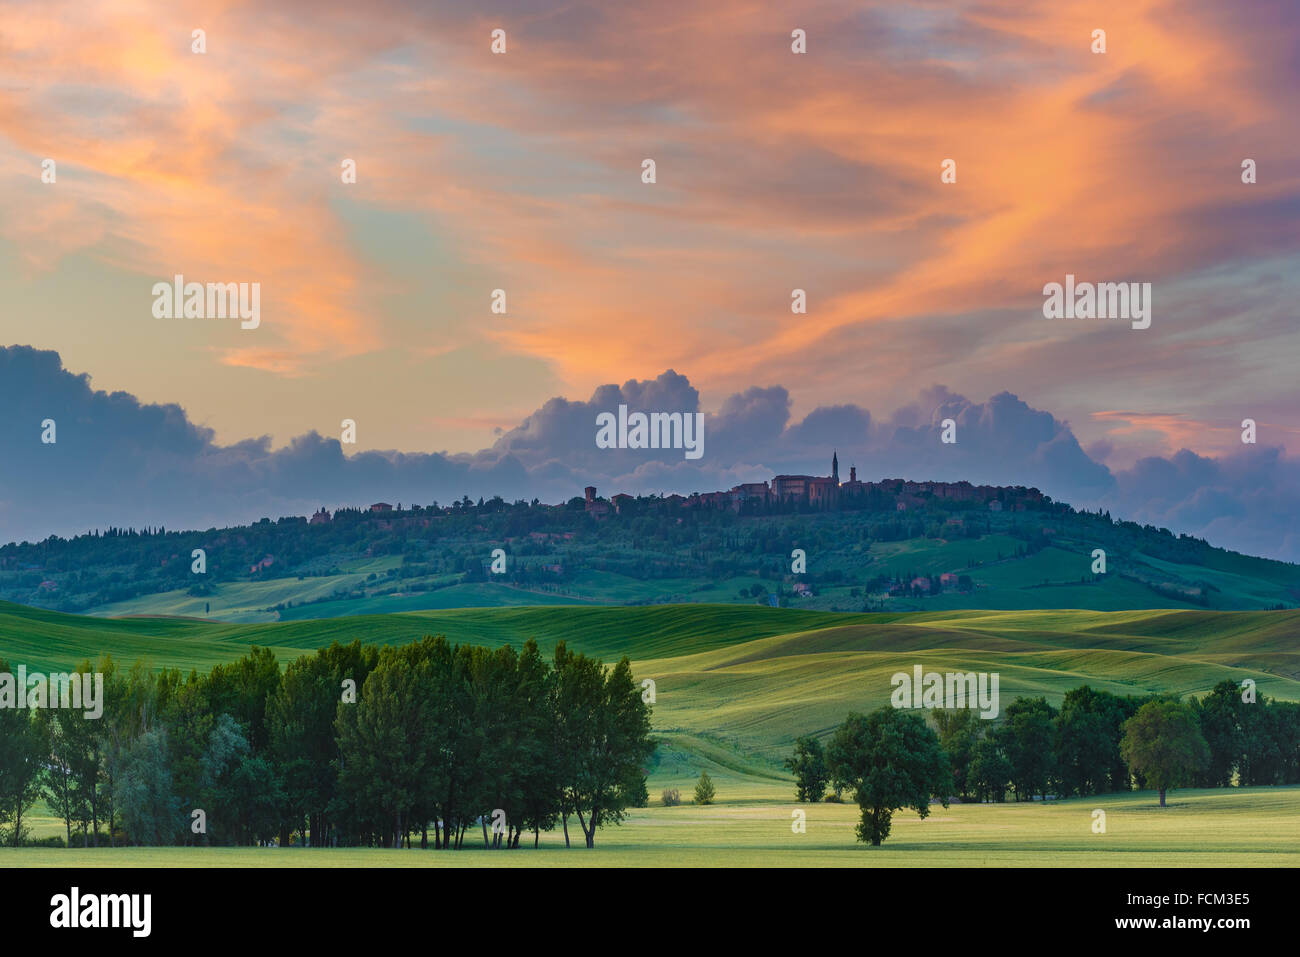 The medieval town of Pienza at colorful sunset - Stock Image